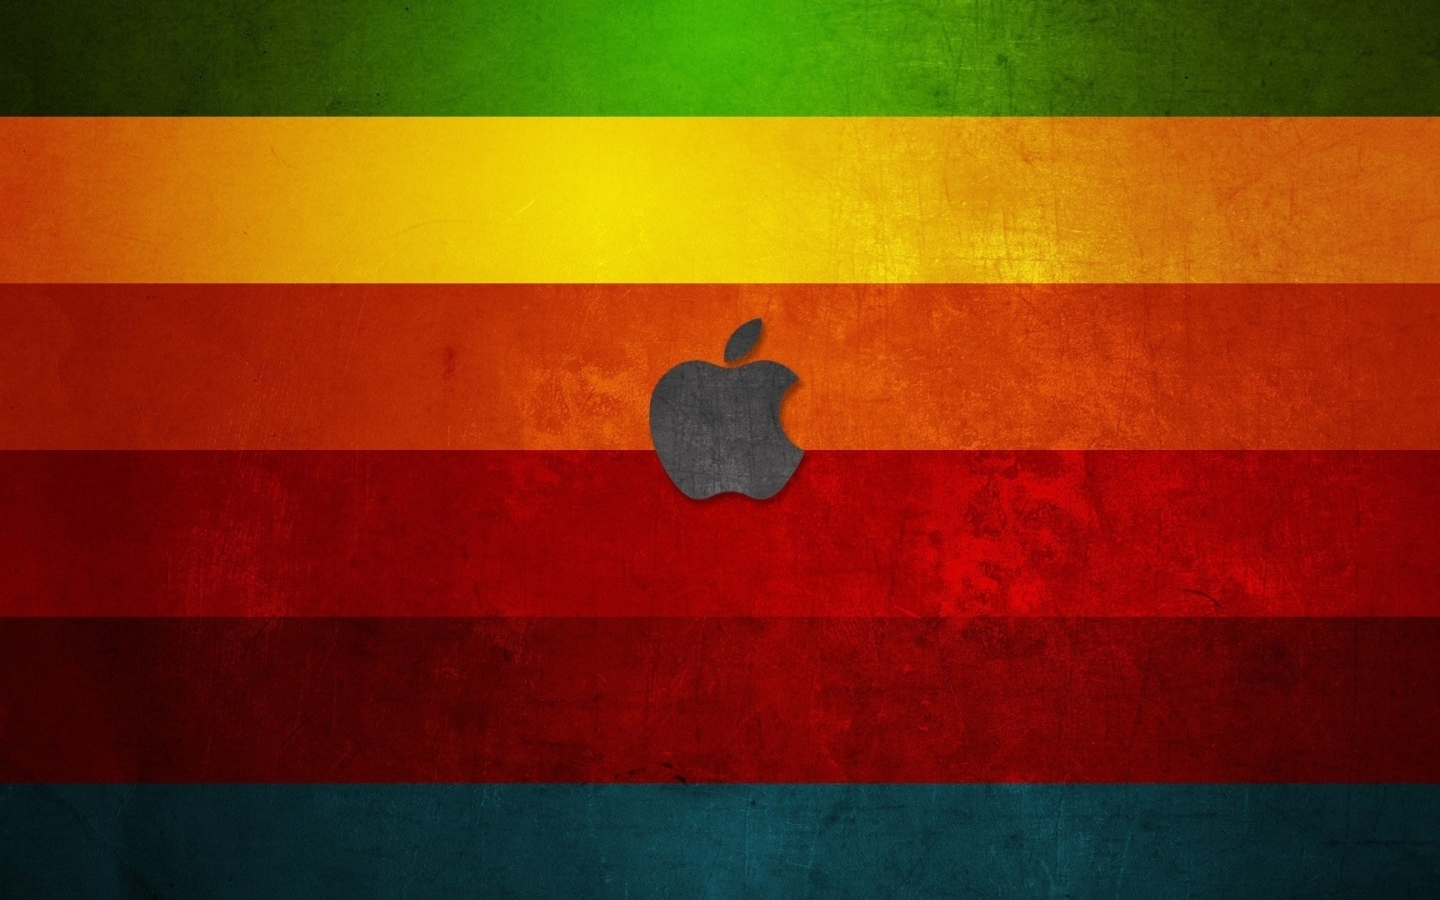 Color Bar Background Apple Mac Wallpaper Download | Free Mac